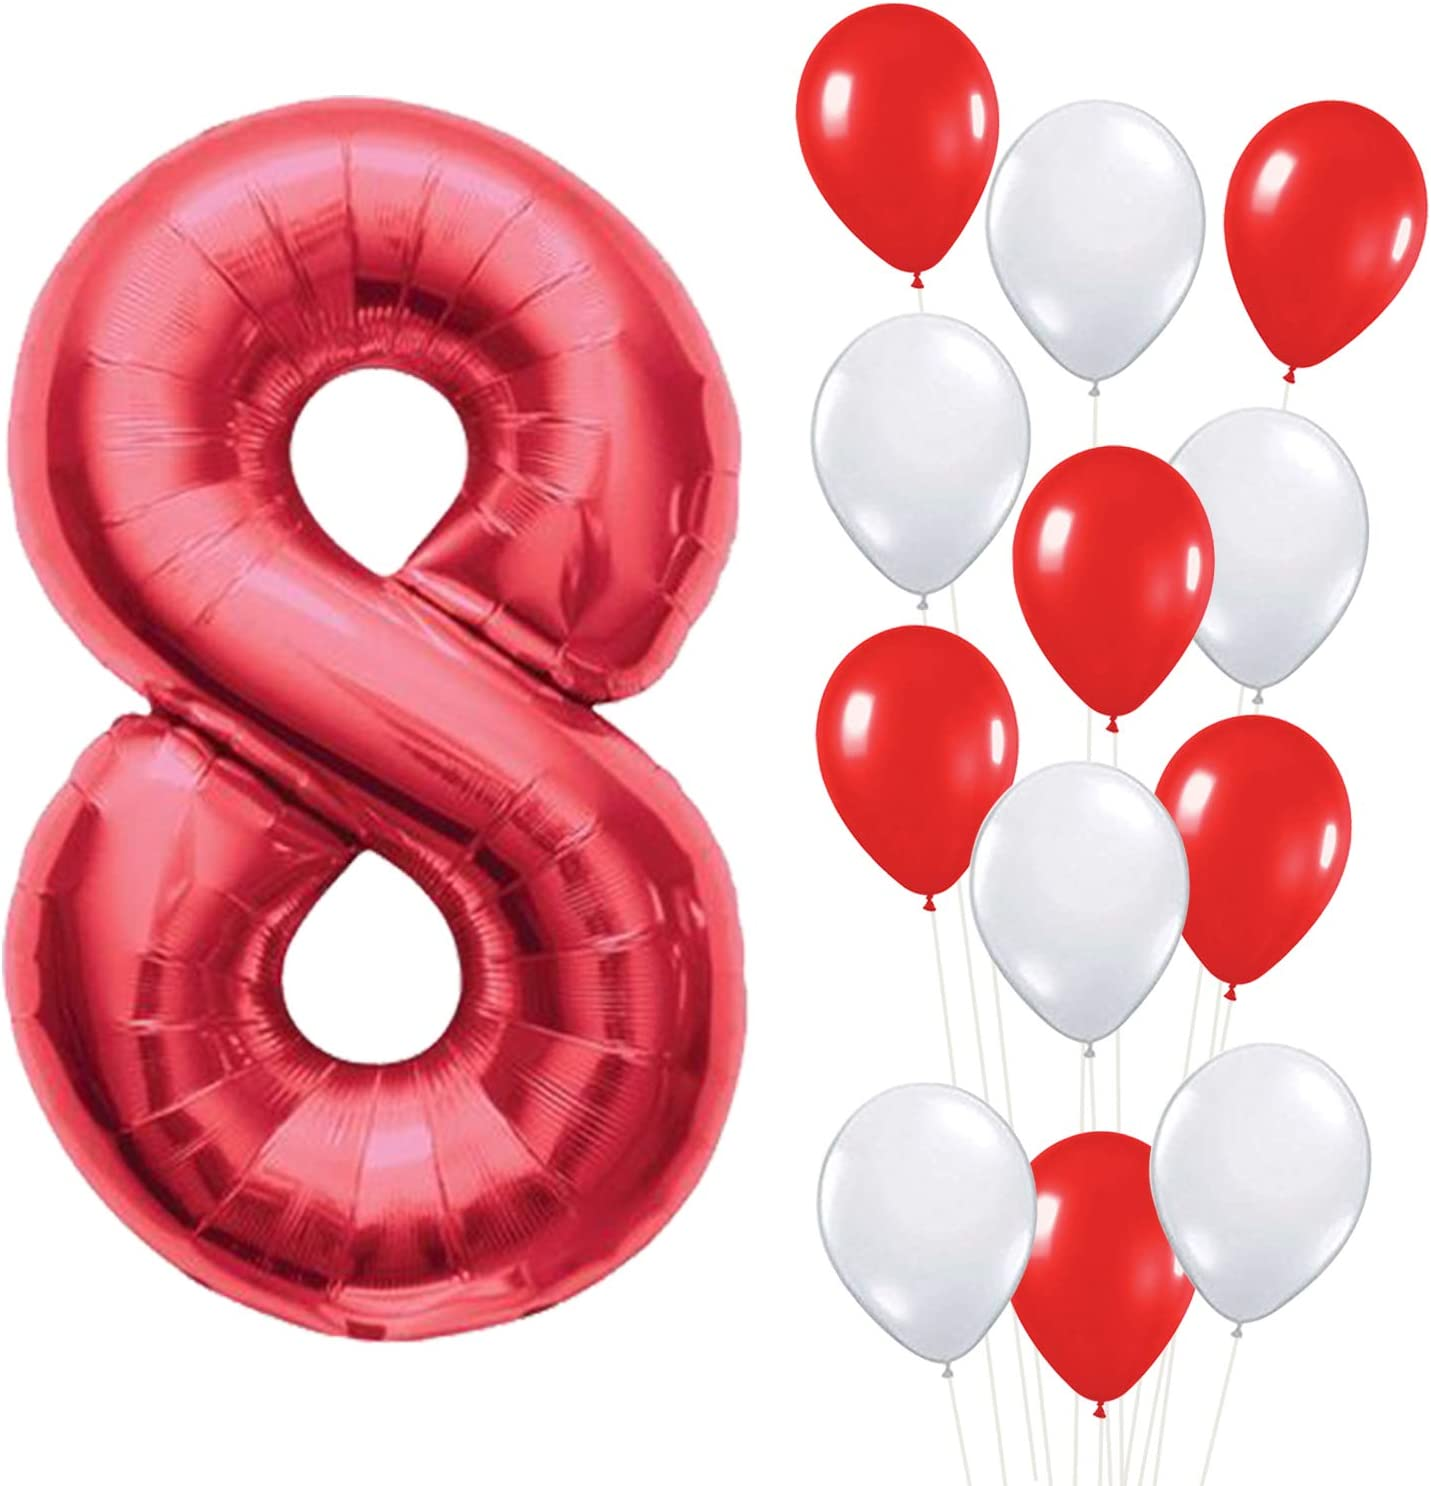 Red Number 8 Mylar Balloon – Large, Pack of 13 | Red and White Latex Balloons Party Decorations Backdrop | 8th Birthday Party Decorations Supplies Kit | Great for Anniversary, Home Office Décor